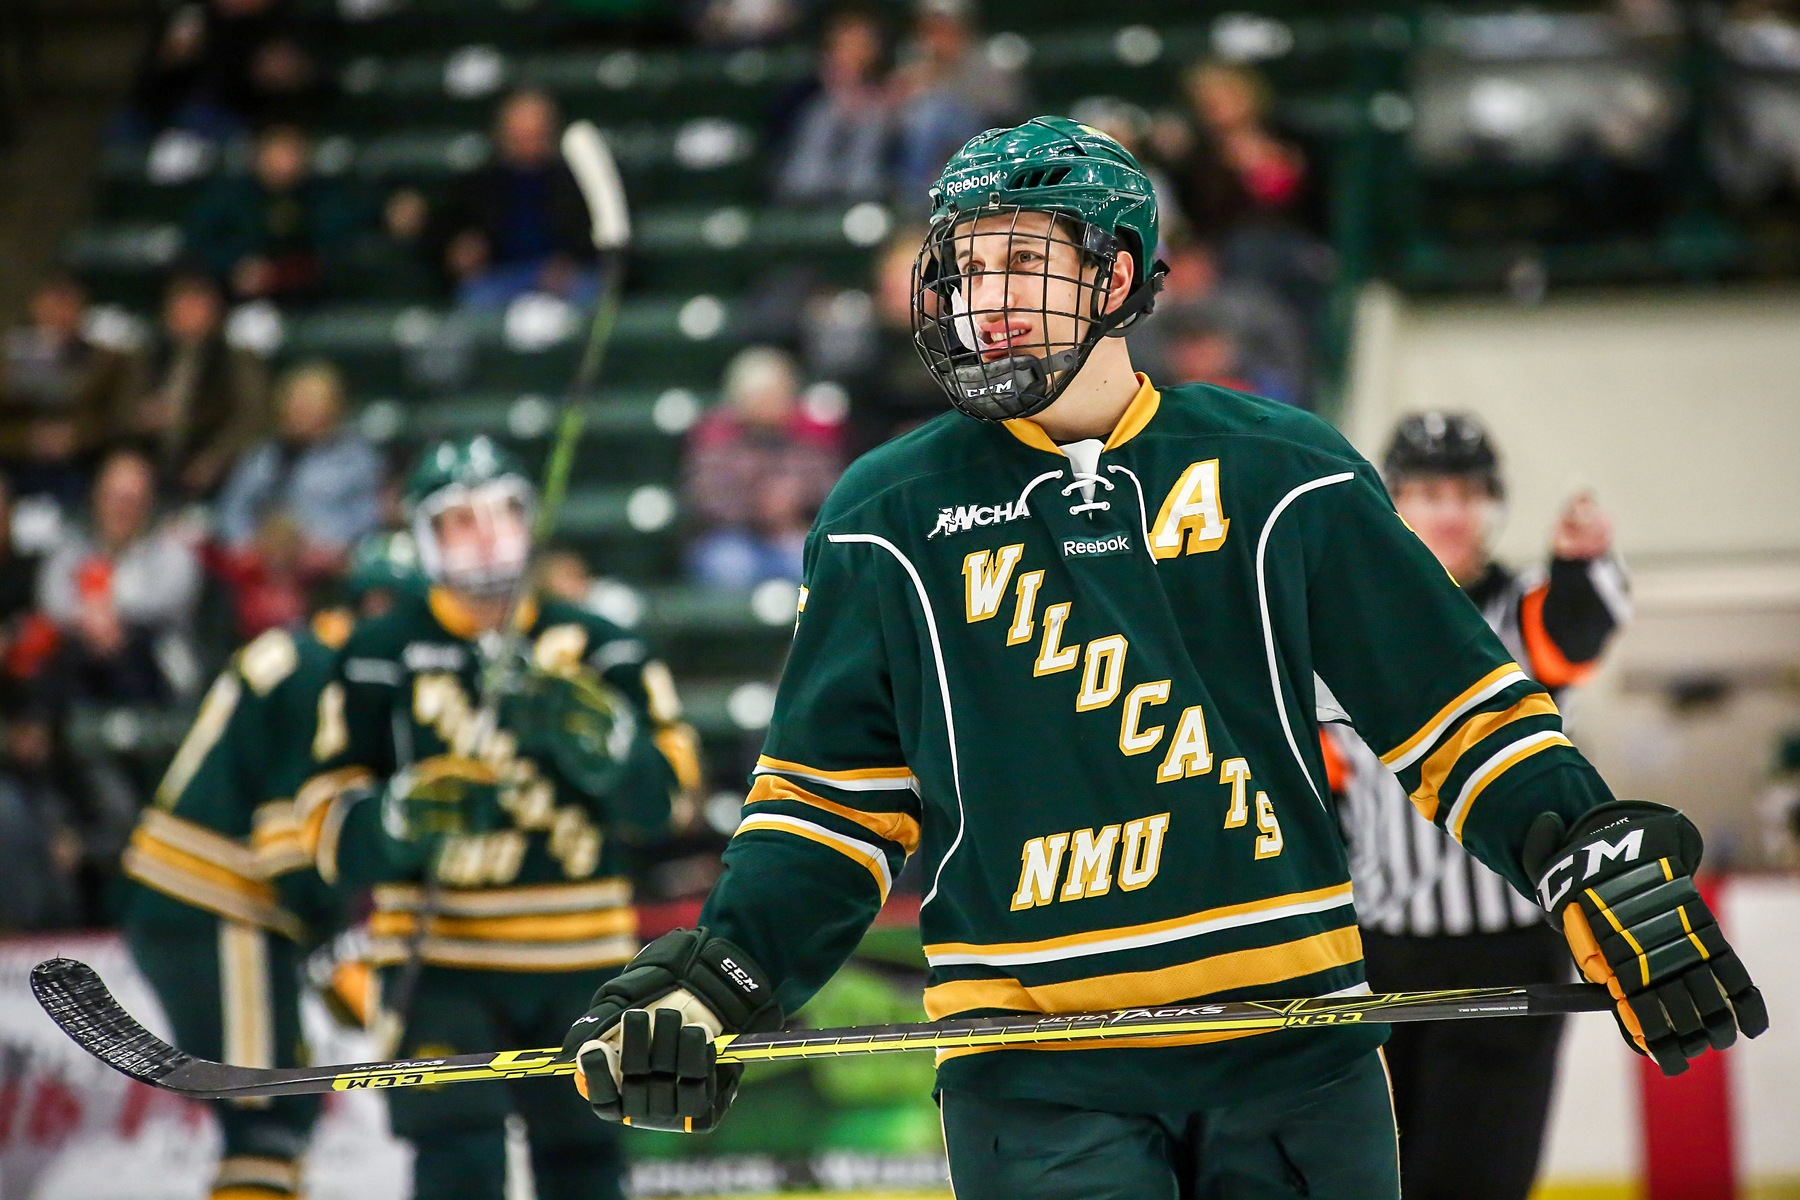 Wildcat Hockey Forces Game Three With 4-2 Win at Bemidji State